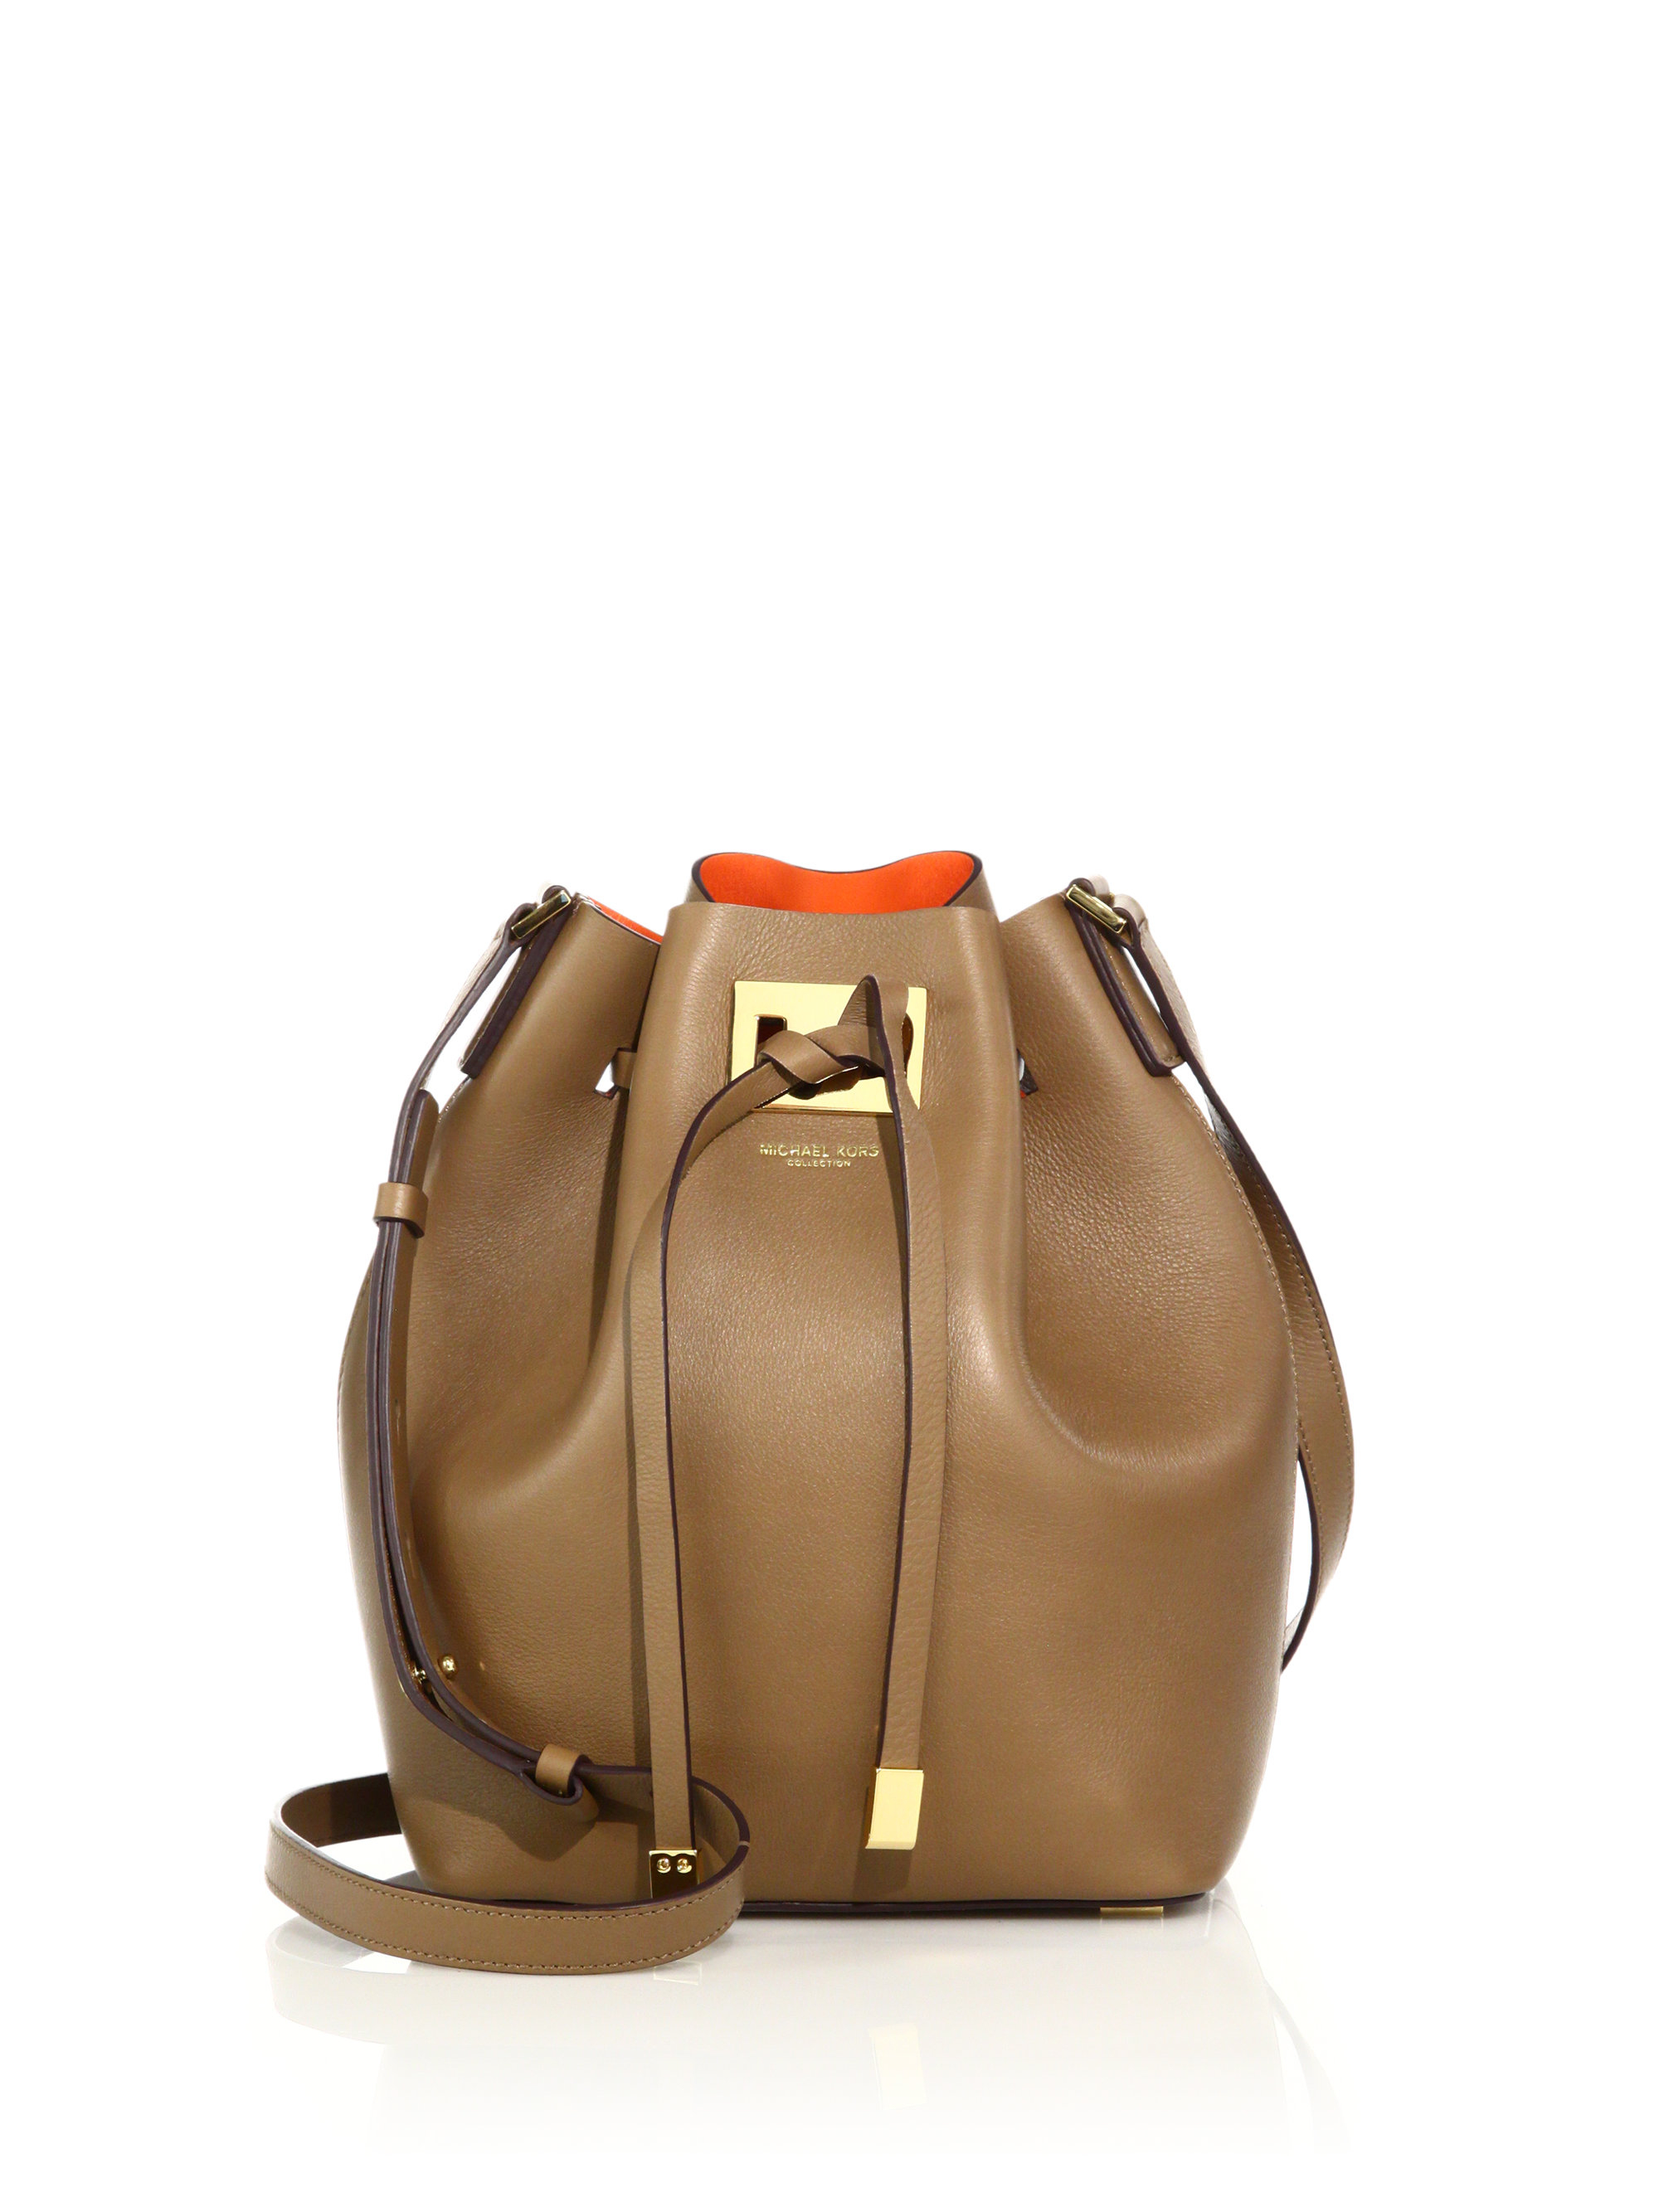 c2a2a7de5389 ... discount code for lyst michael kors miranda medium leather bucket bag  in natural d9f7a 13255